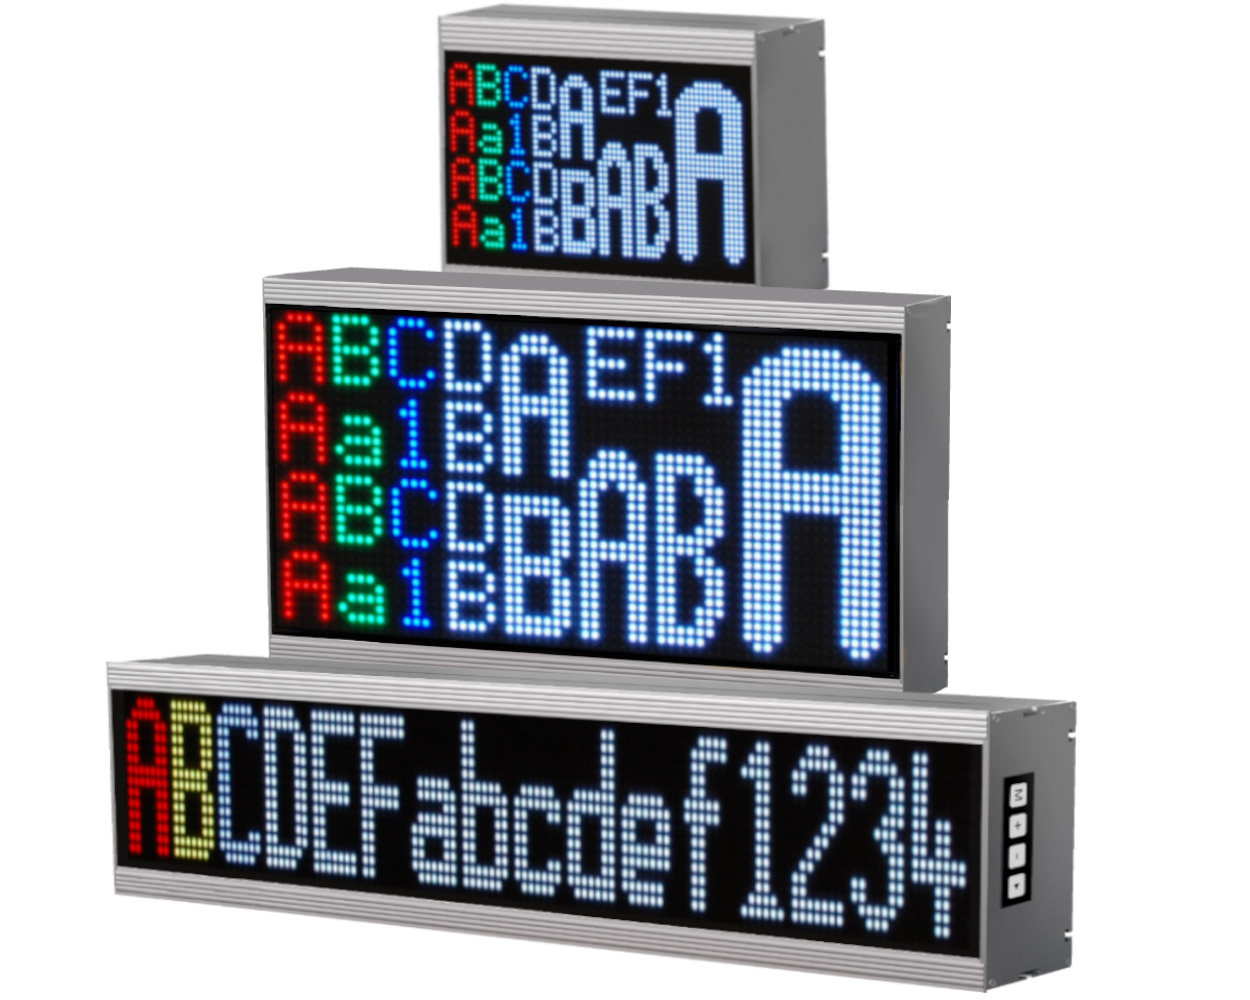 Alphanumeric large displays, 16 colors, indoor/outdoor, pixel pitch: 3-20 mm